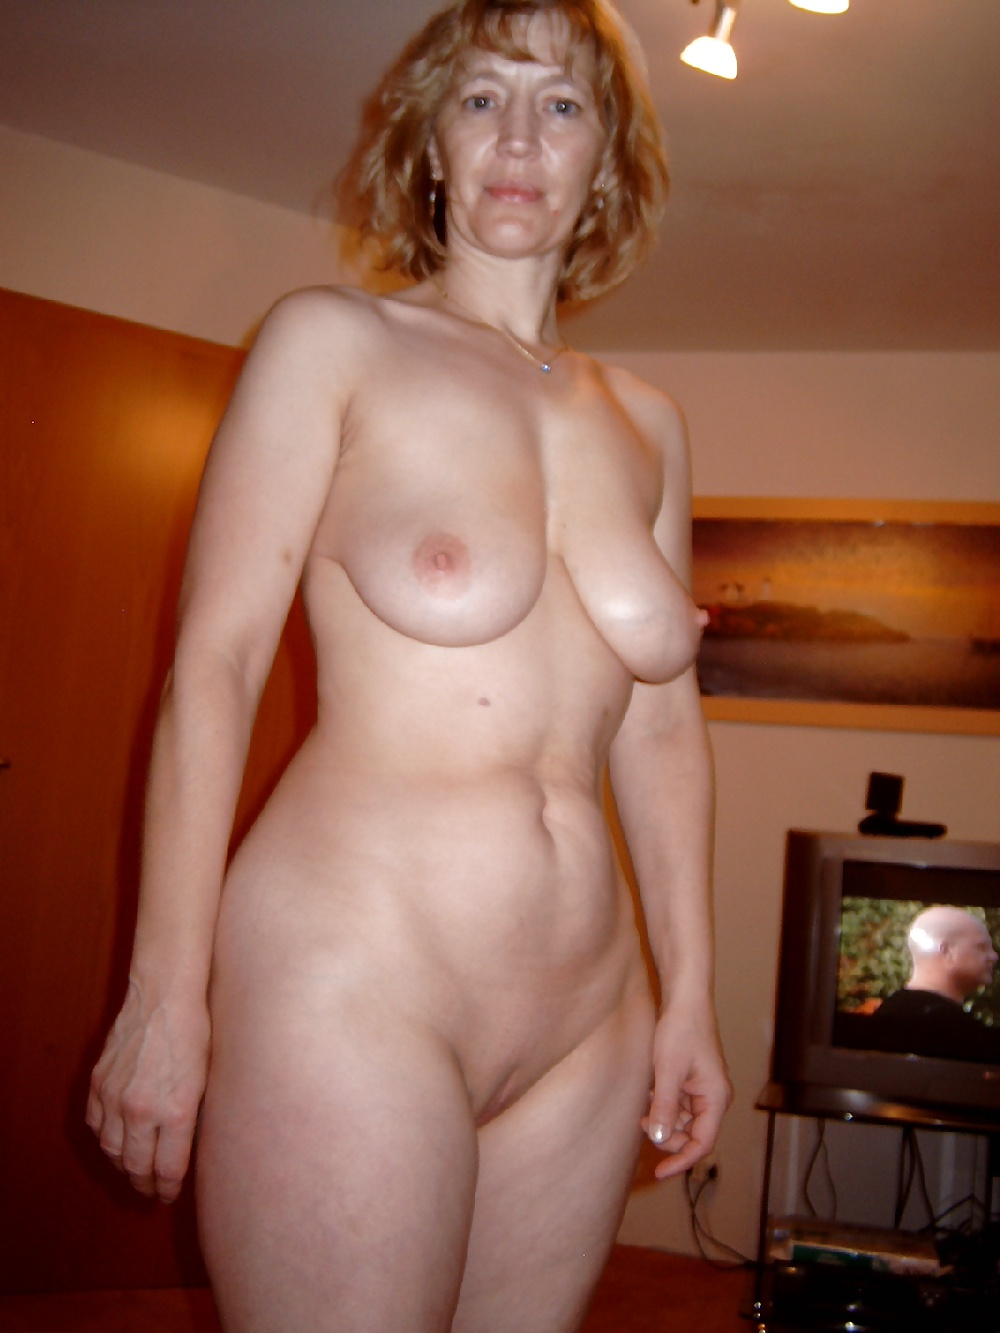 http://hotamateurmature.com/gallery/Mature_housewives_and_sexy_grannies_16/16.jpg